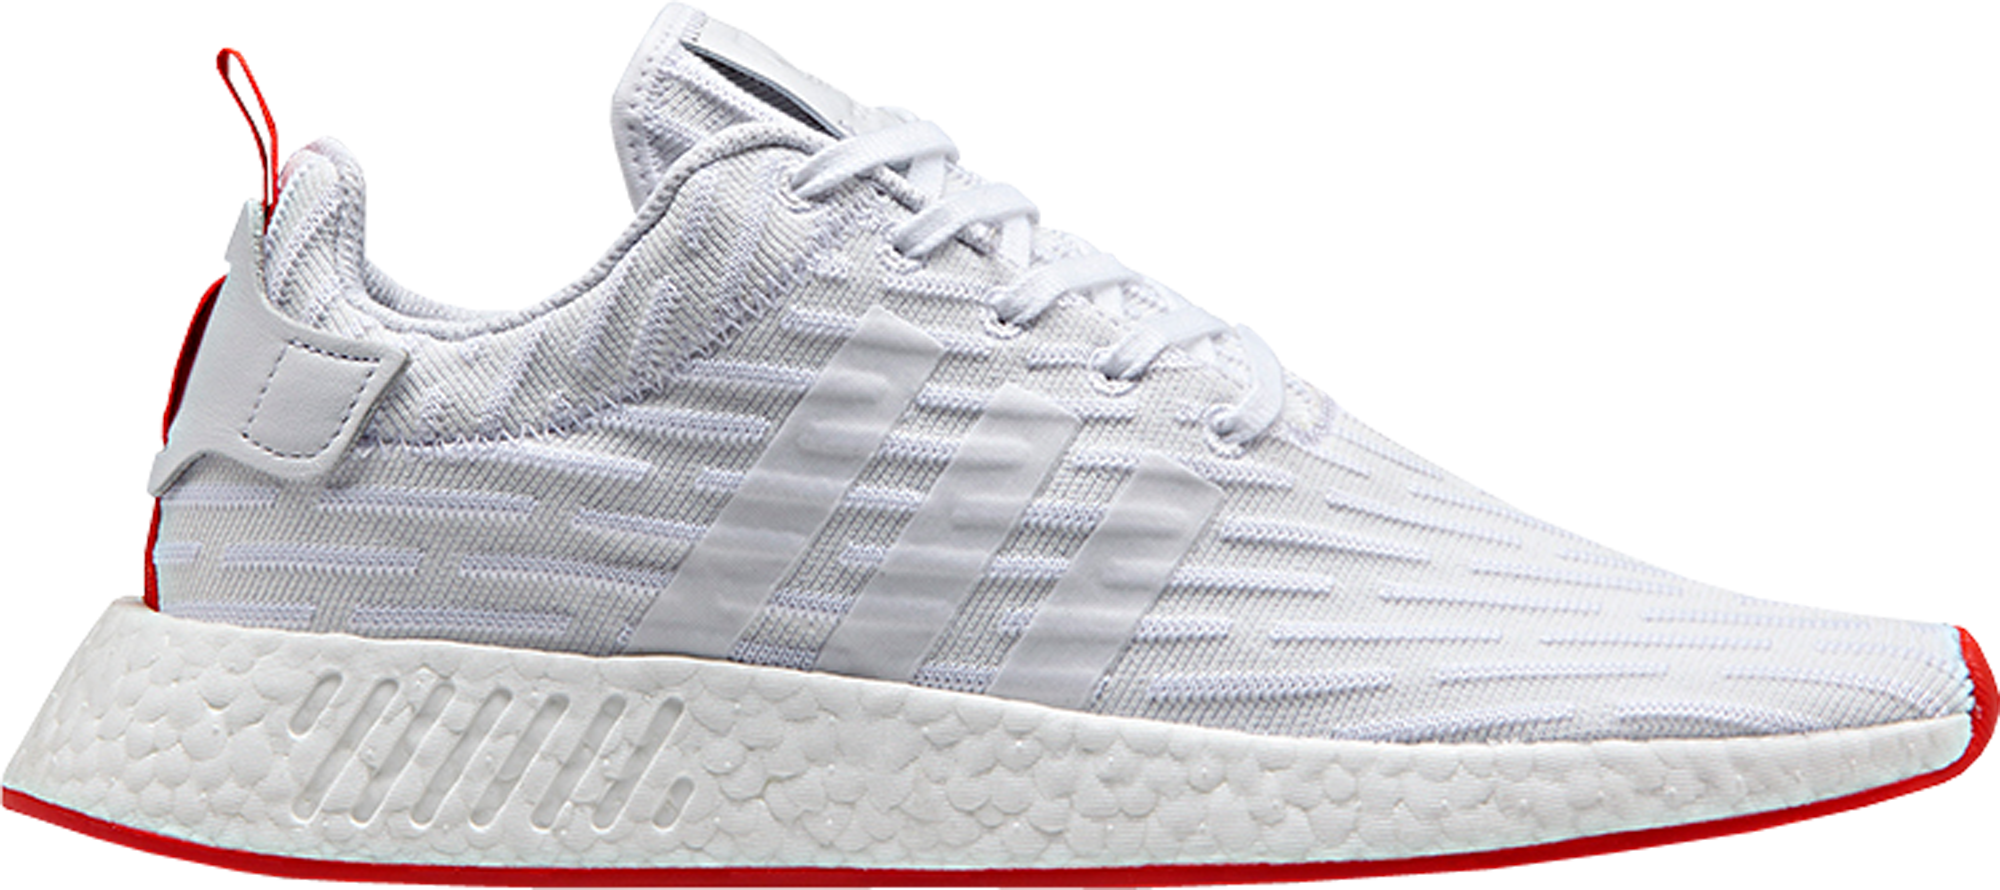 "adidas NMD R2 White Core Red ""Two Toned"""